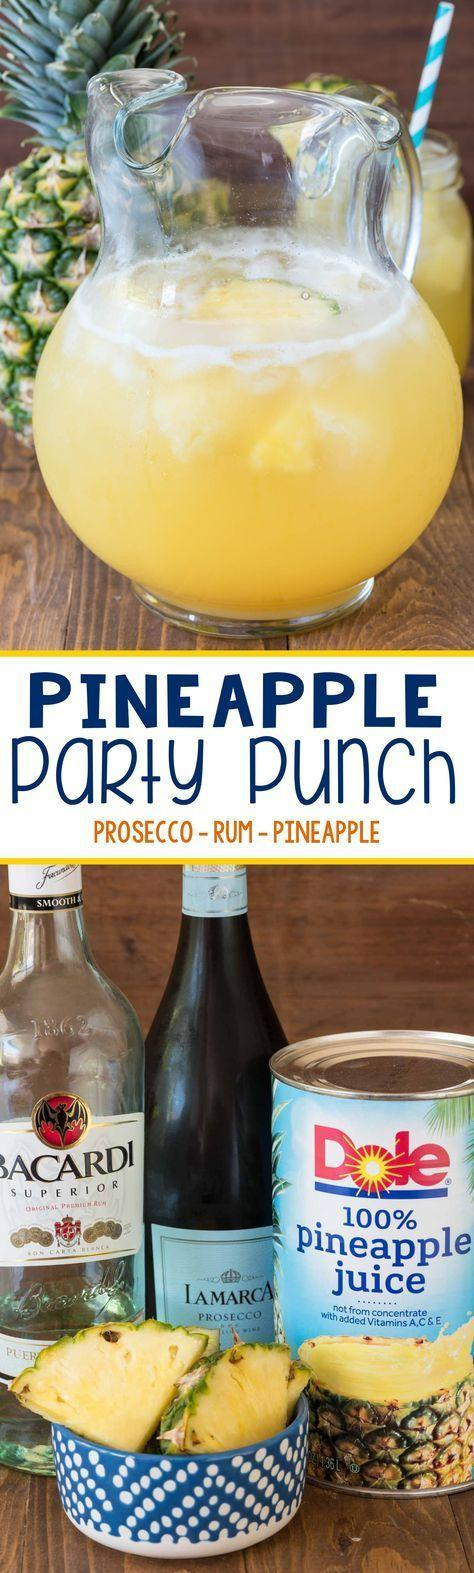 Wedding - Pineapple Party Punch